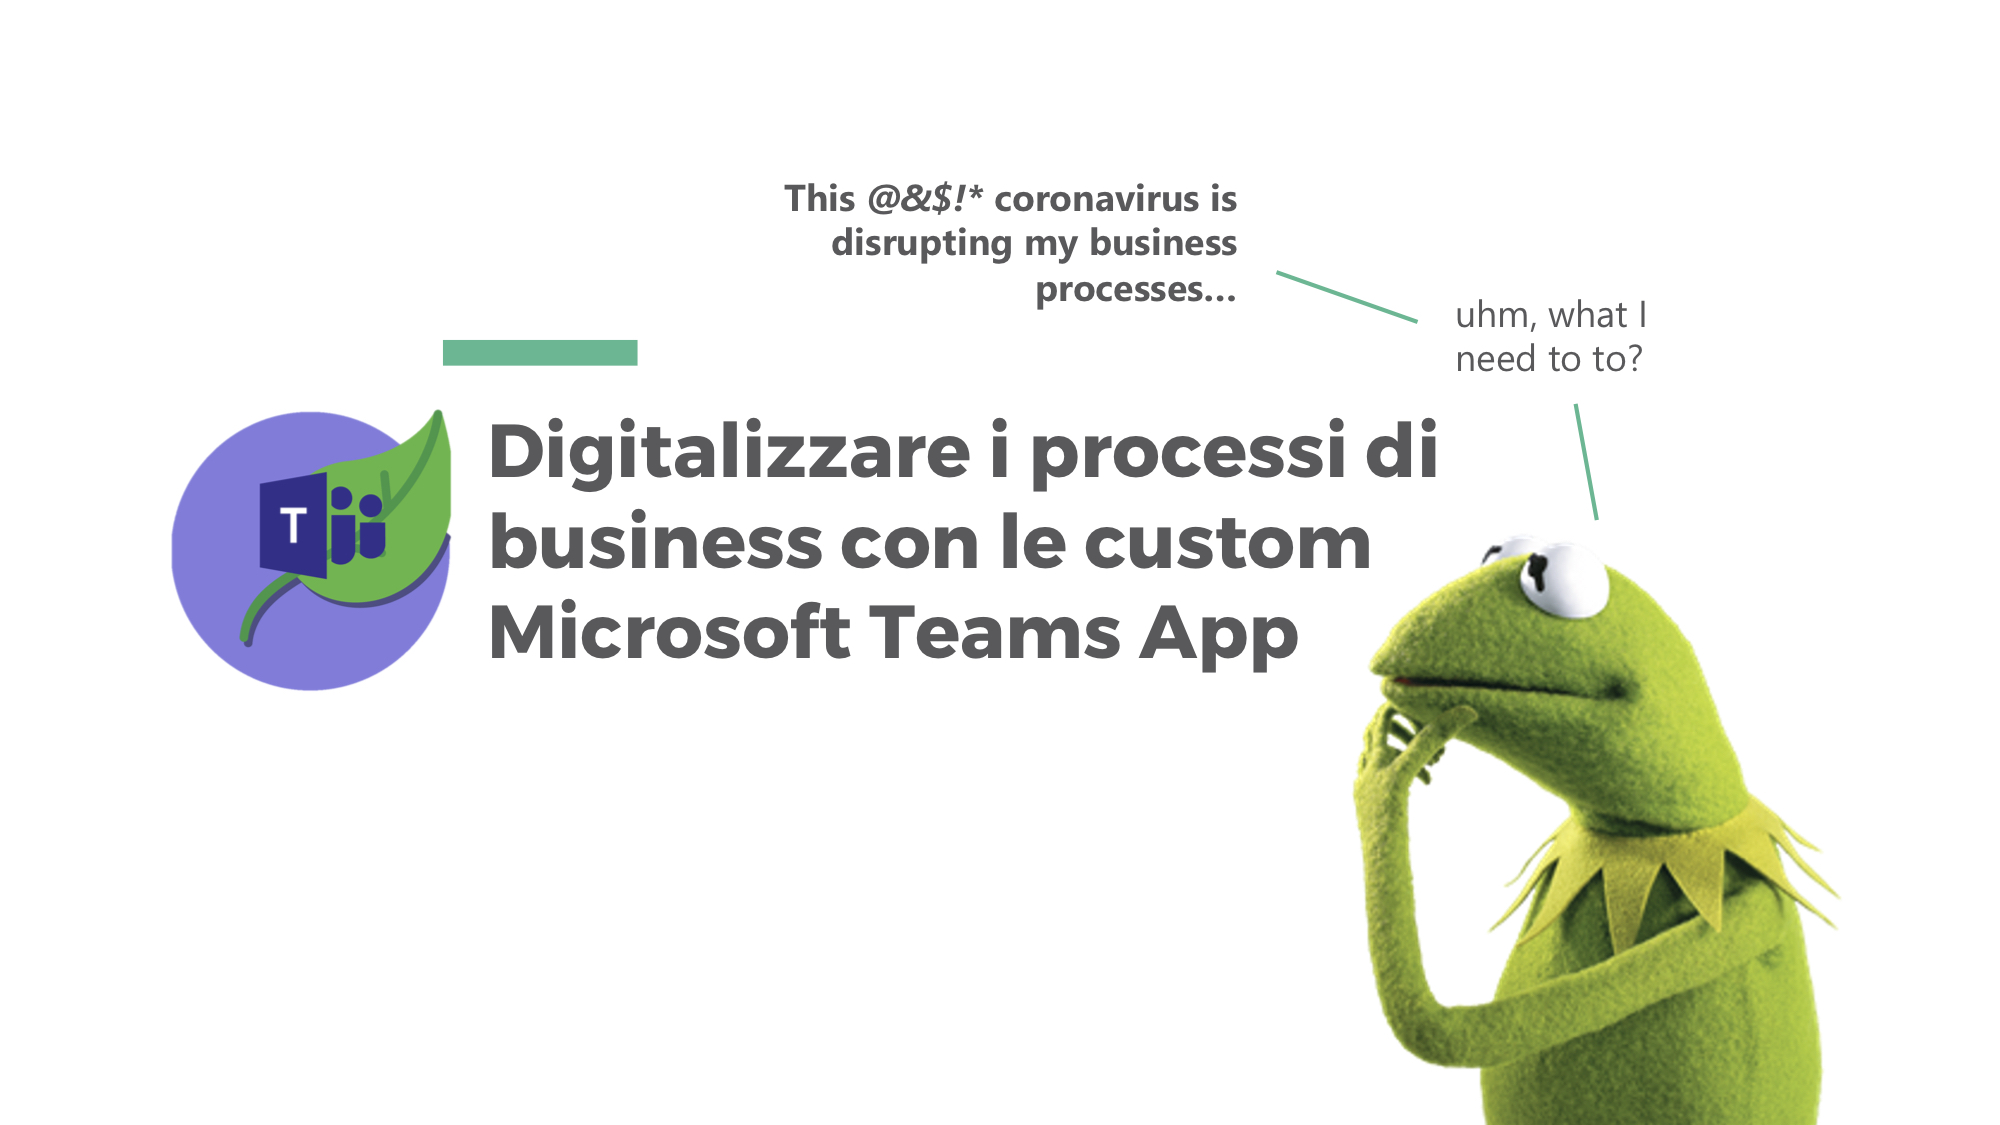 Digitalizzare i processi di business con le custom Microsoft Teams App